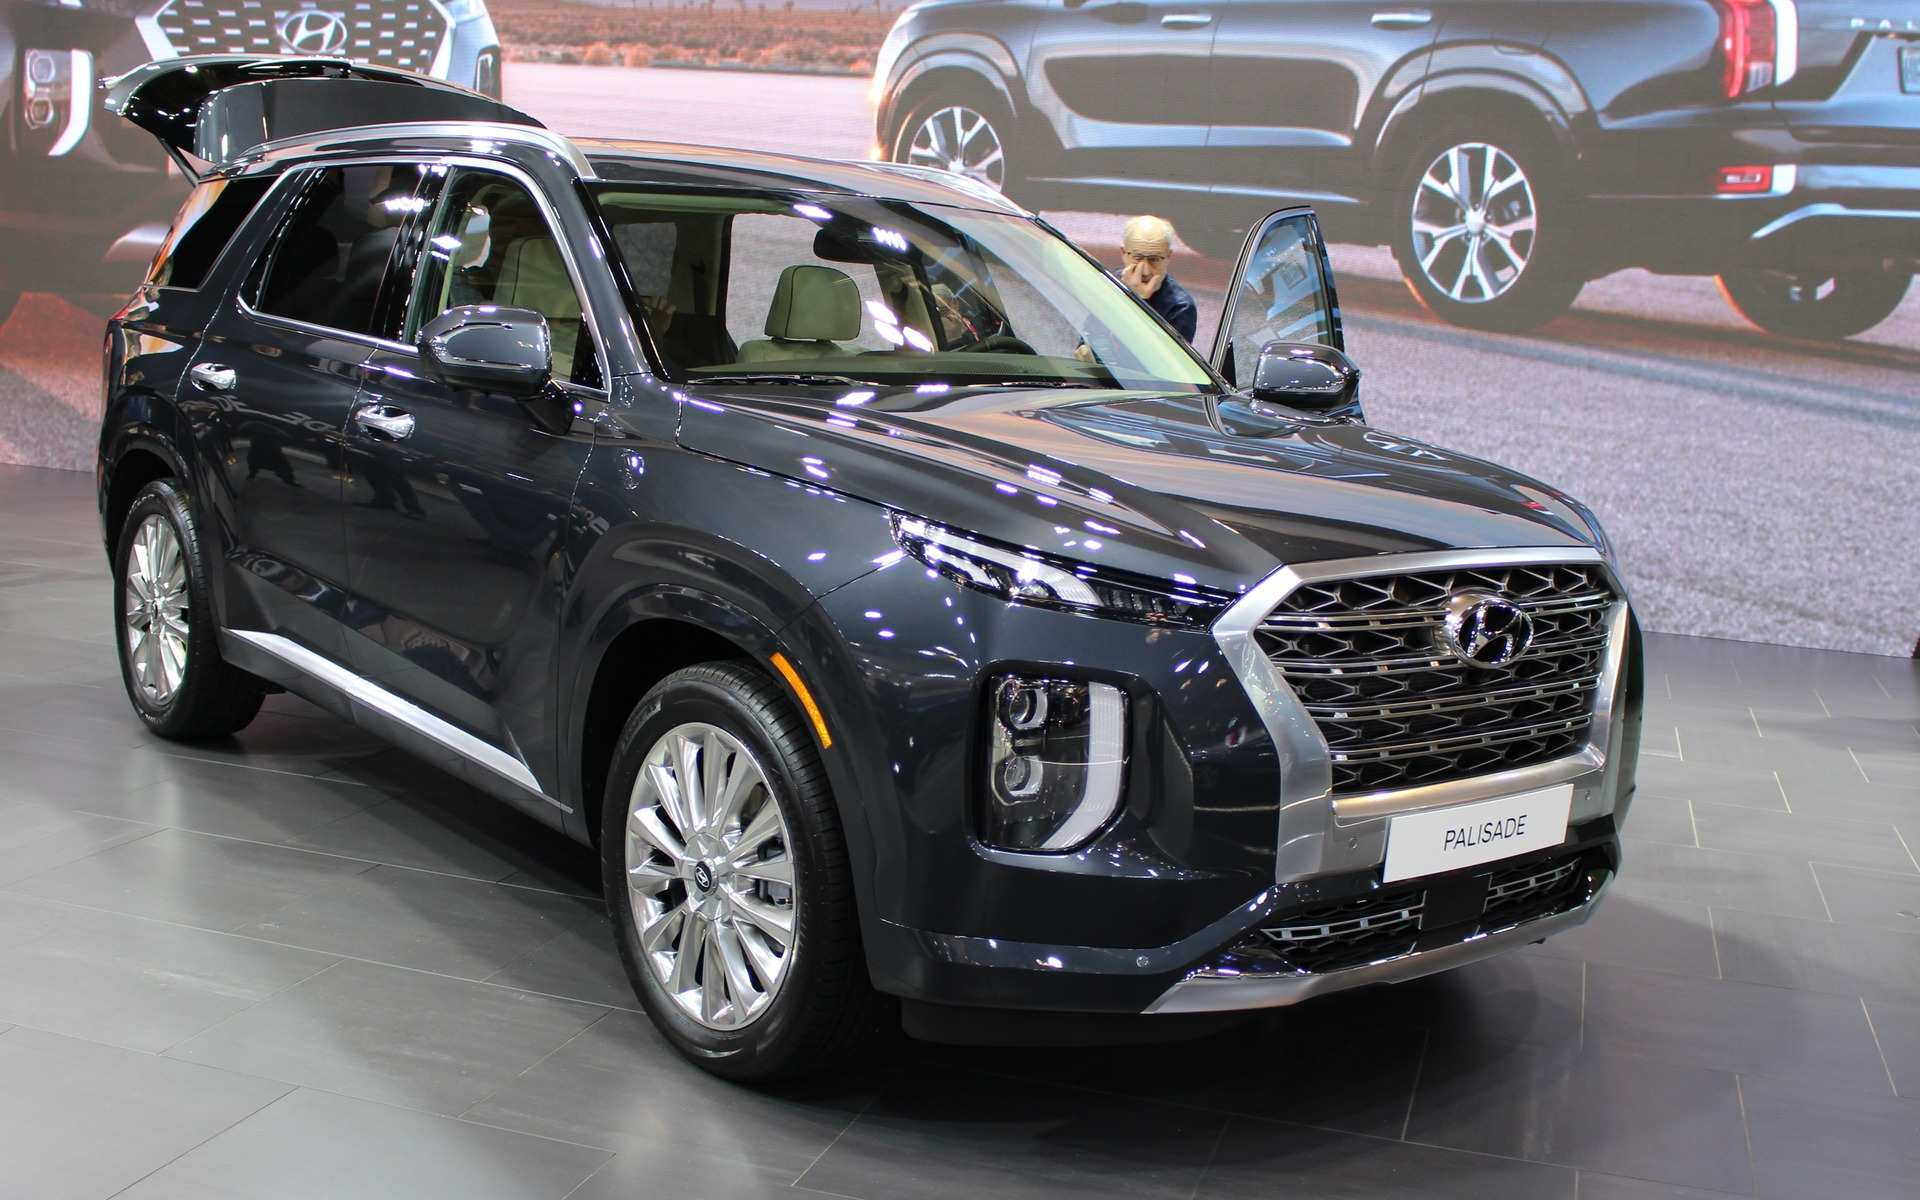 79 New When Will The 2020 Hyundai Palisade Be Available Rumors for When Will The 2020 Hyundai Palisade Be Available